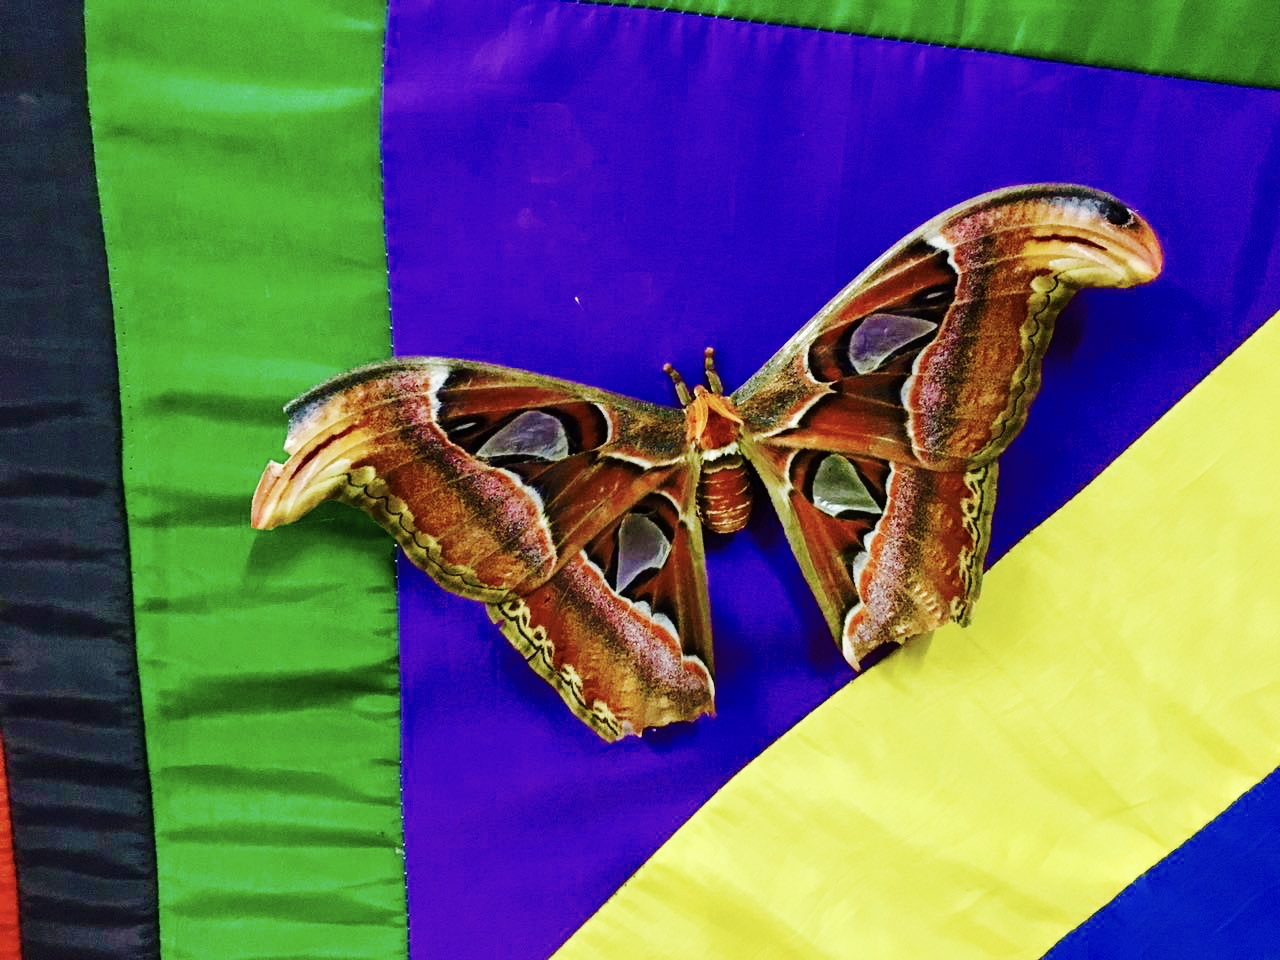 Atlas Moth-one of the largest in the world | Widen Your Horizon